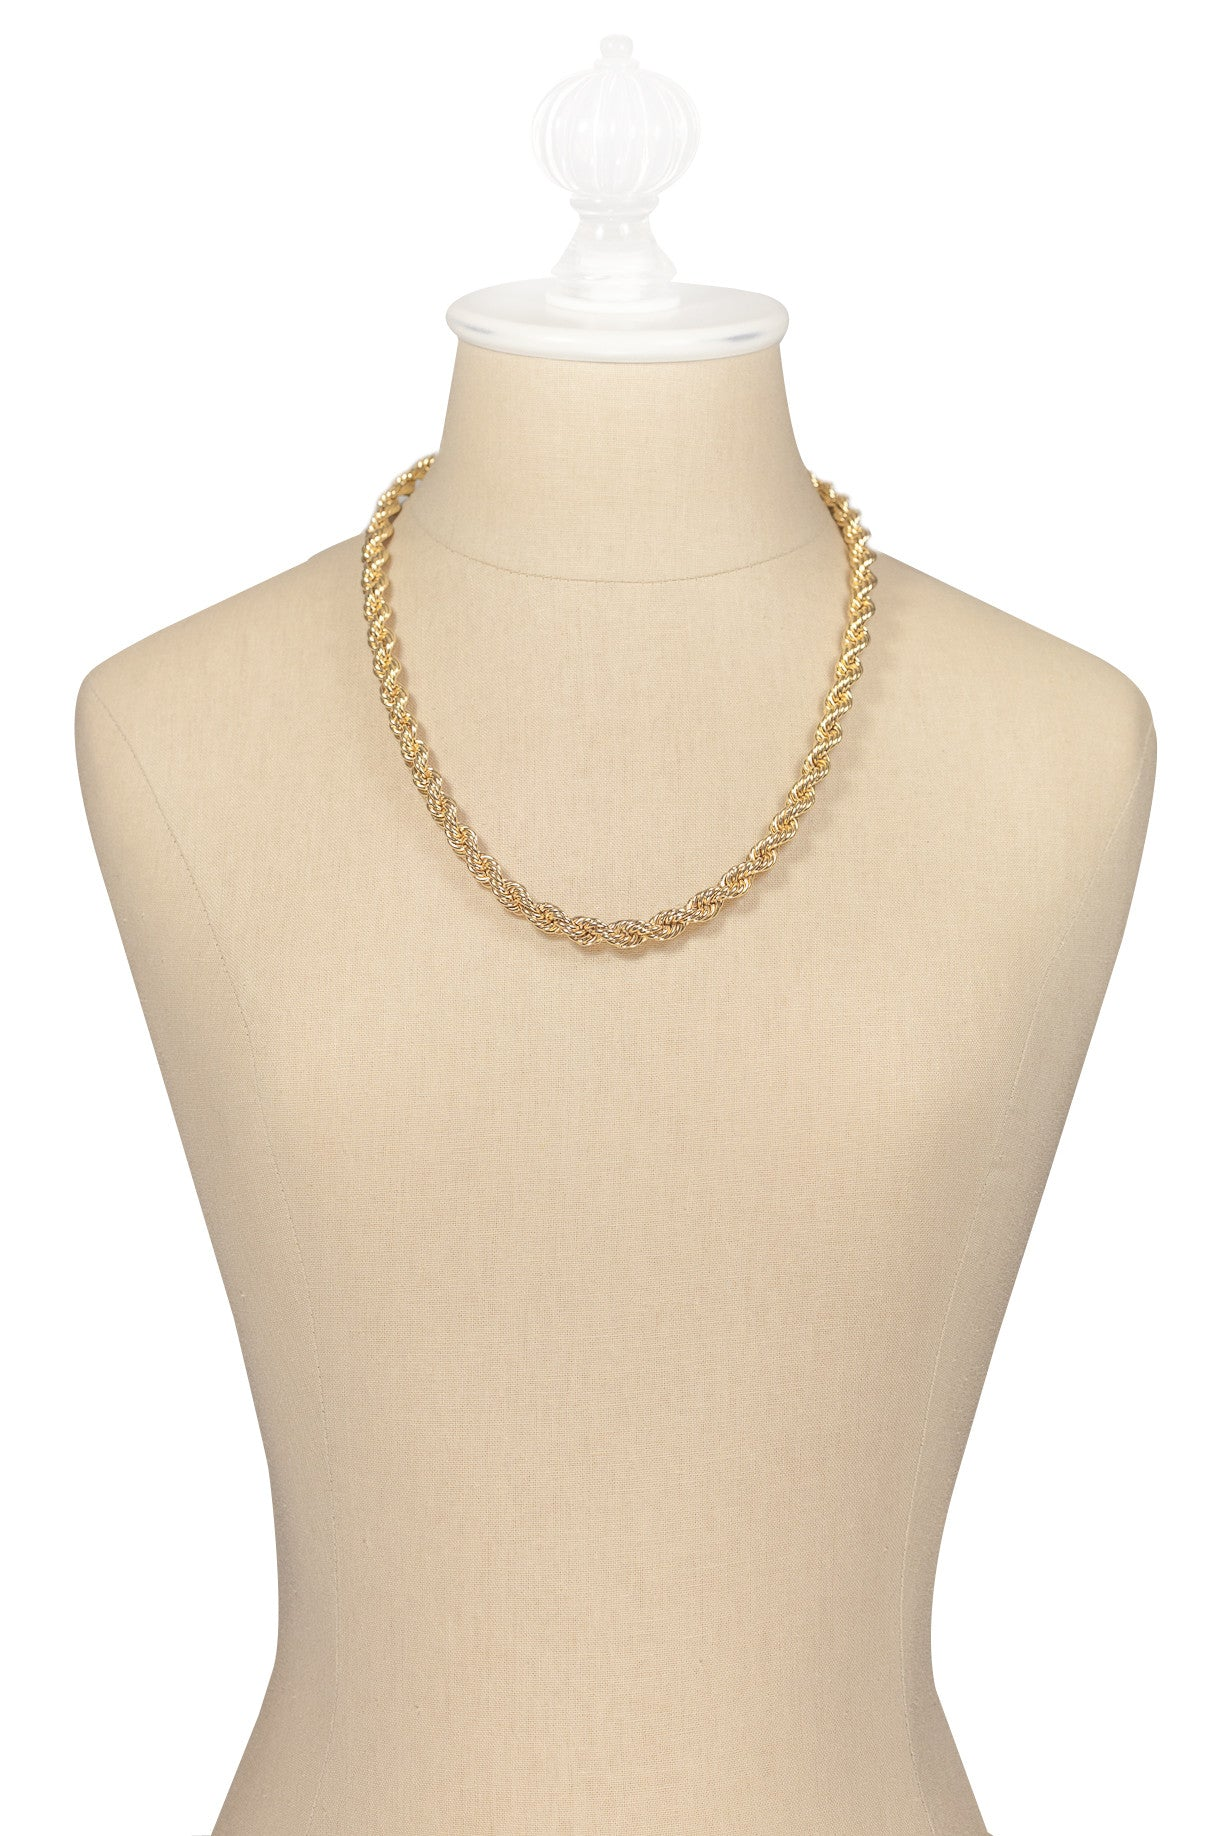 70's__Napier__Chunky Rope Chain Necklace